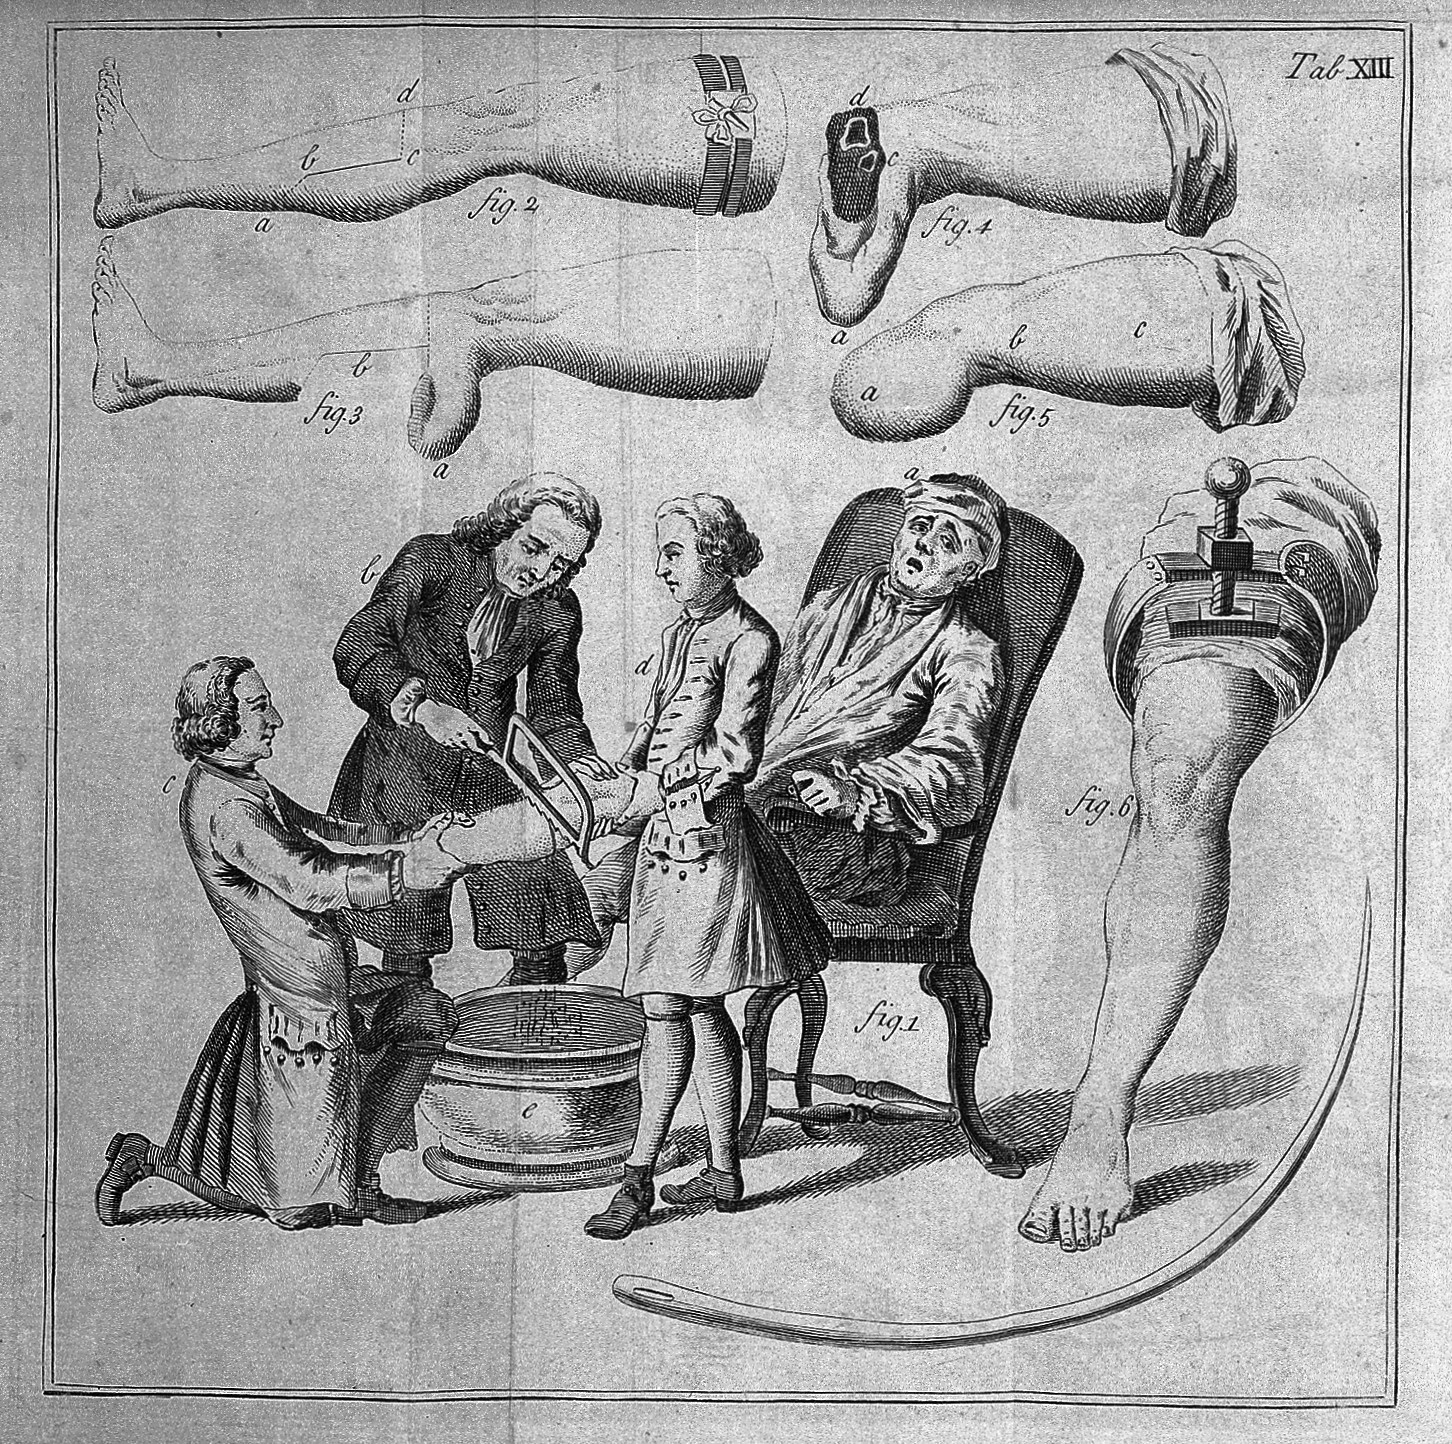 File:S. Mihles, The elements of surgery, 1764 Wellcome L0029965.jpg